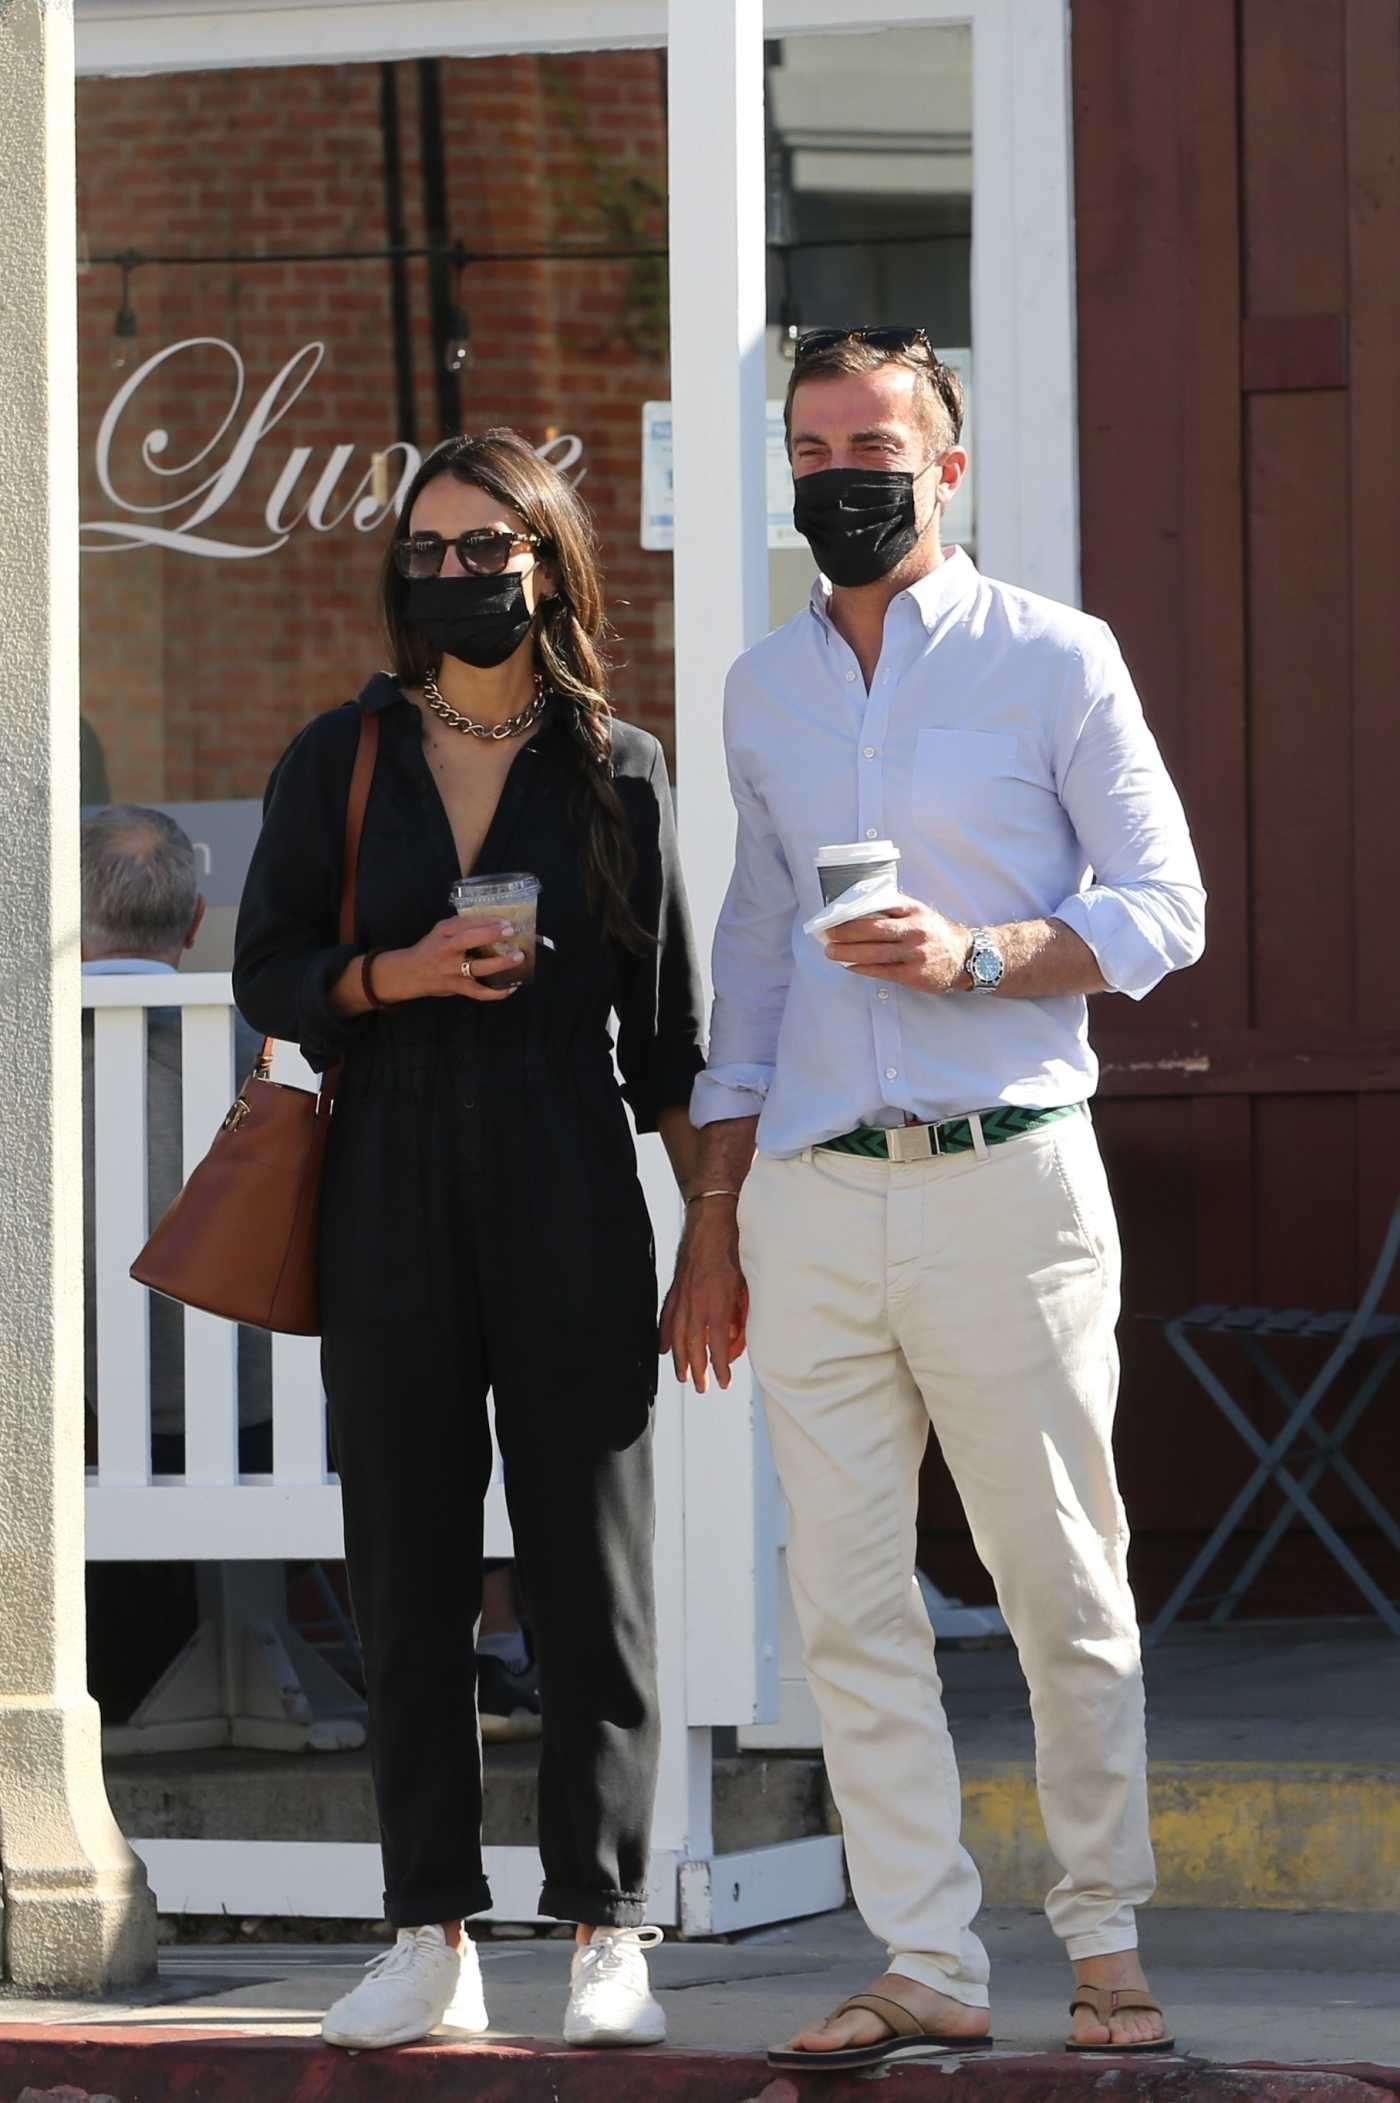 Jordana Brewster in a Black Outfit Grabs Coffee at Cafe Luxe with Her Boyfriend in Brentwood 04/28/2021